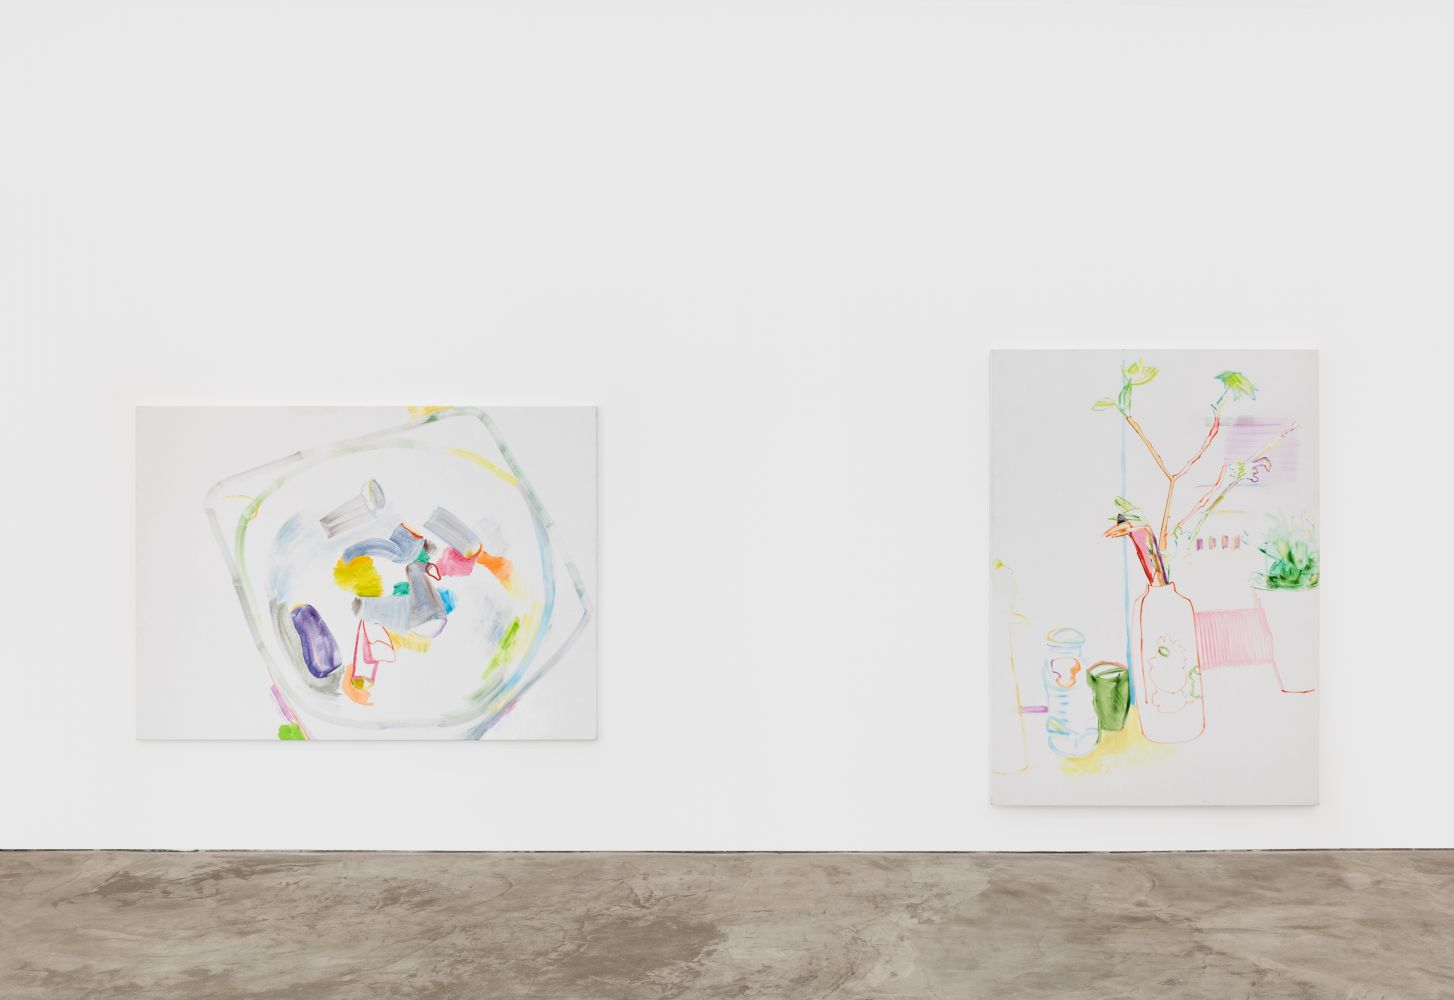 Installation View of Gerlind Zeilner: Open End (January 16–February 27, 2021) Nino Mier Gallery, Los Angeles, CA